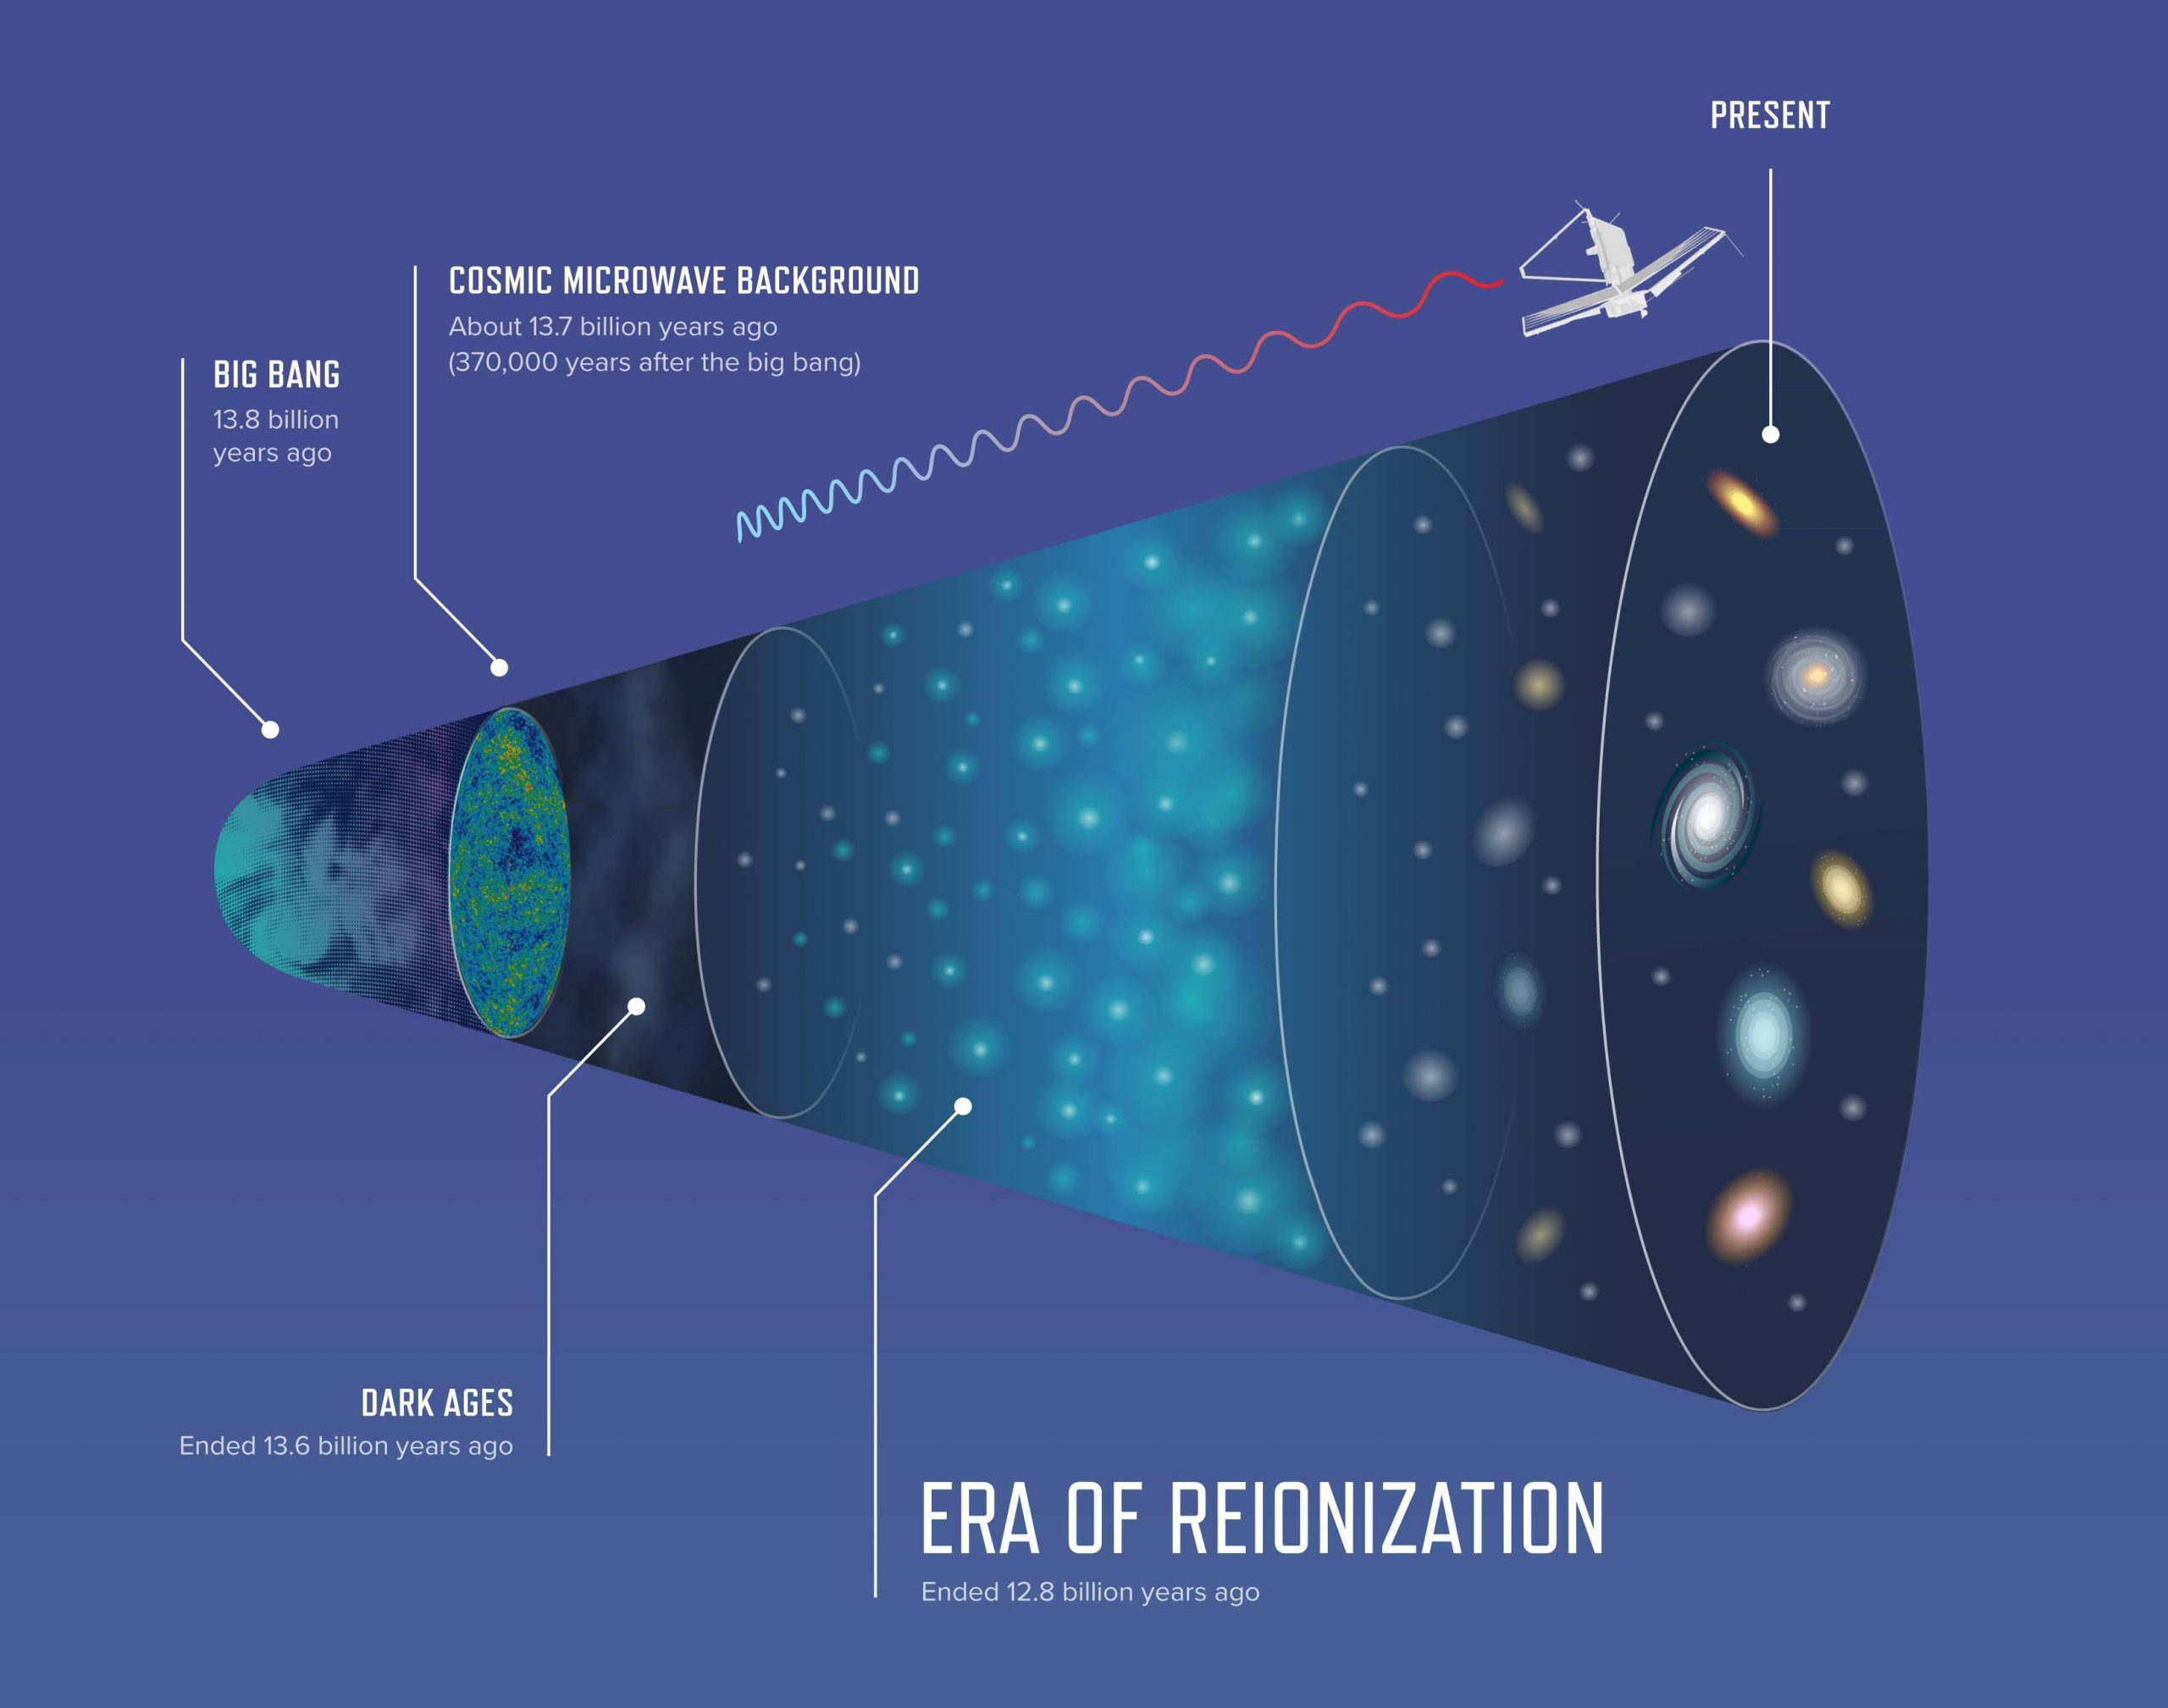 Era-of-Reionization-scaled.jpg